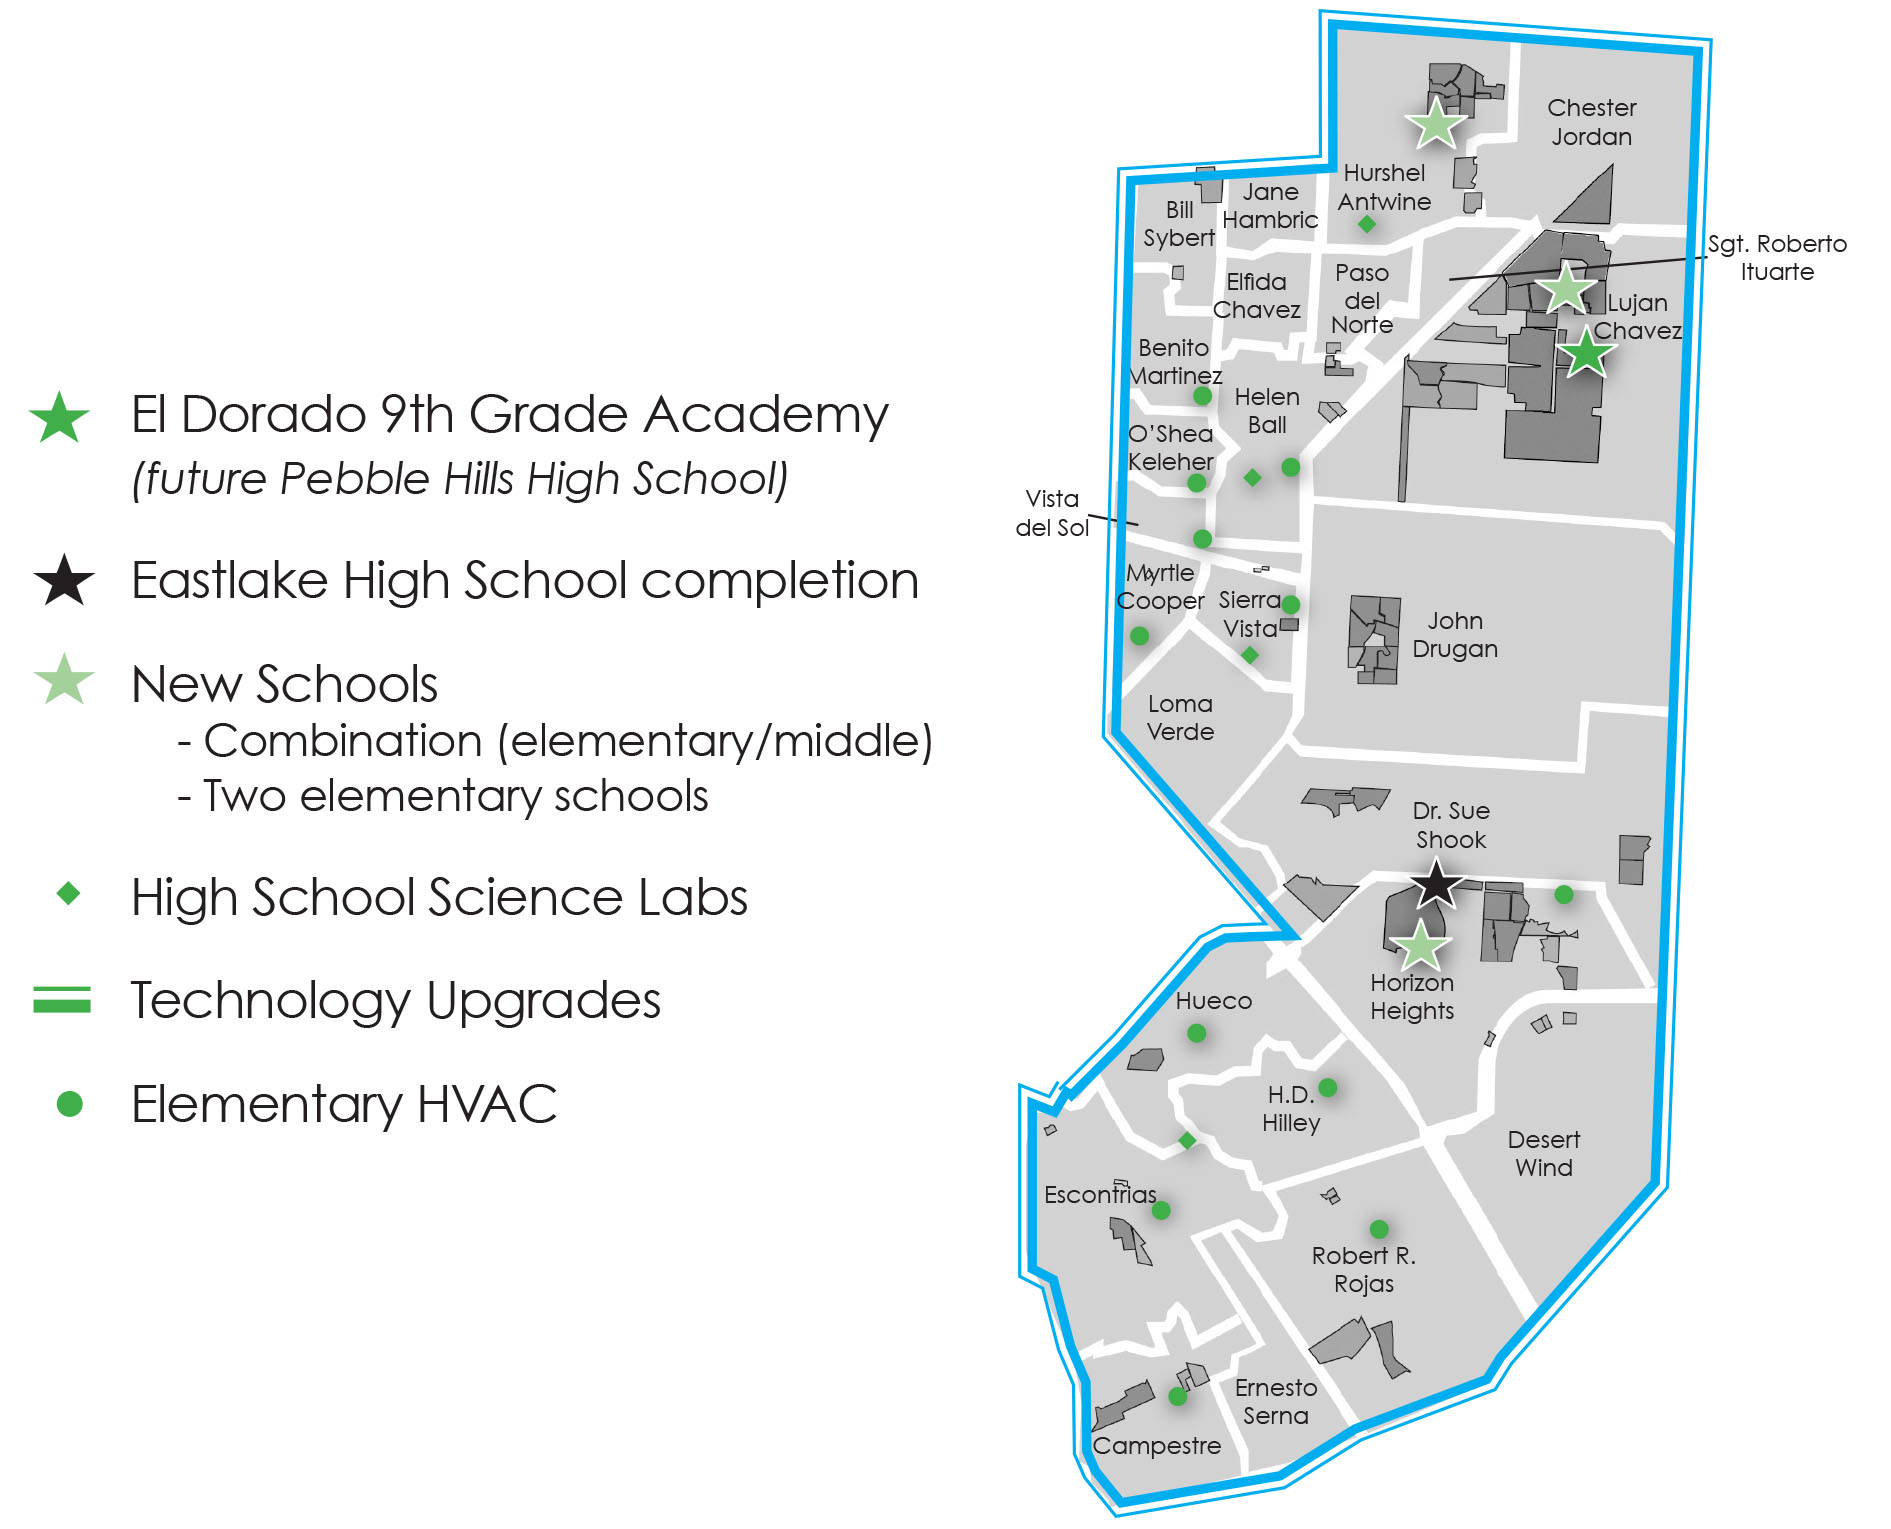 Bond 2011 Map for the new high schools